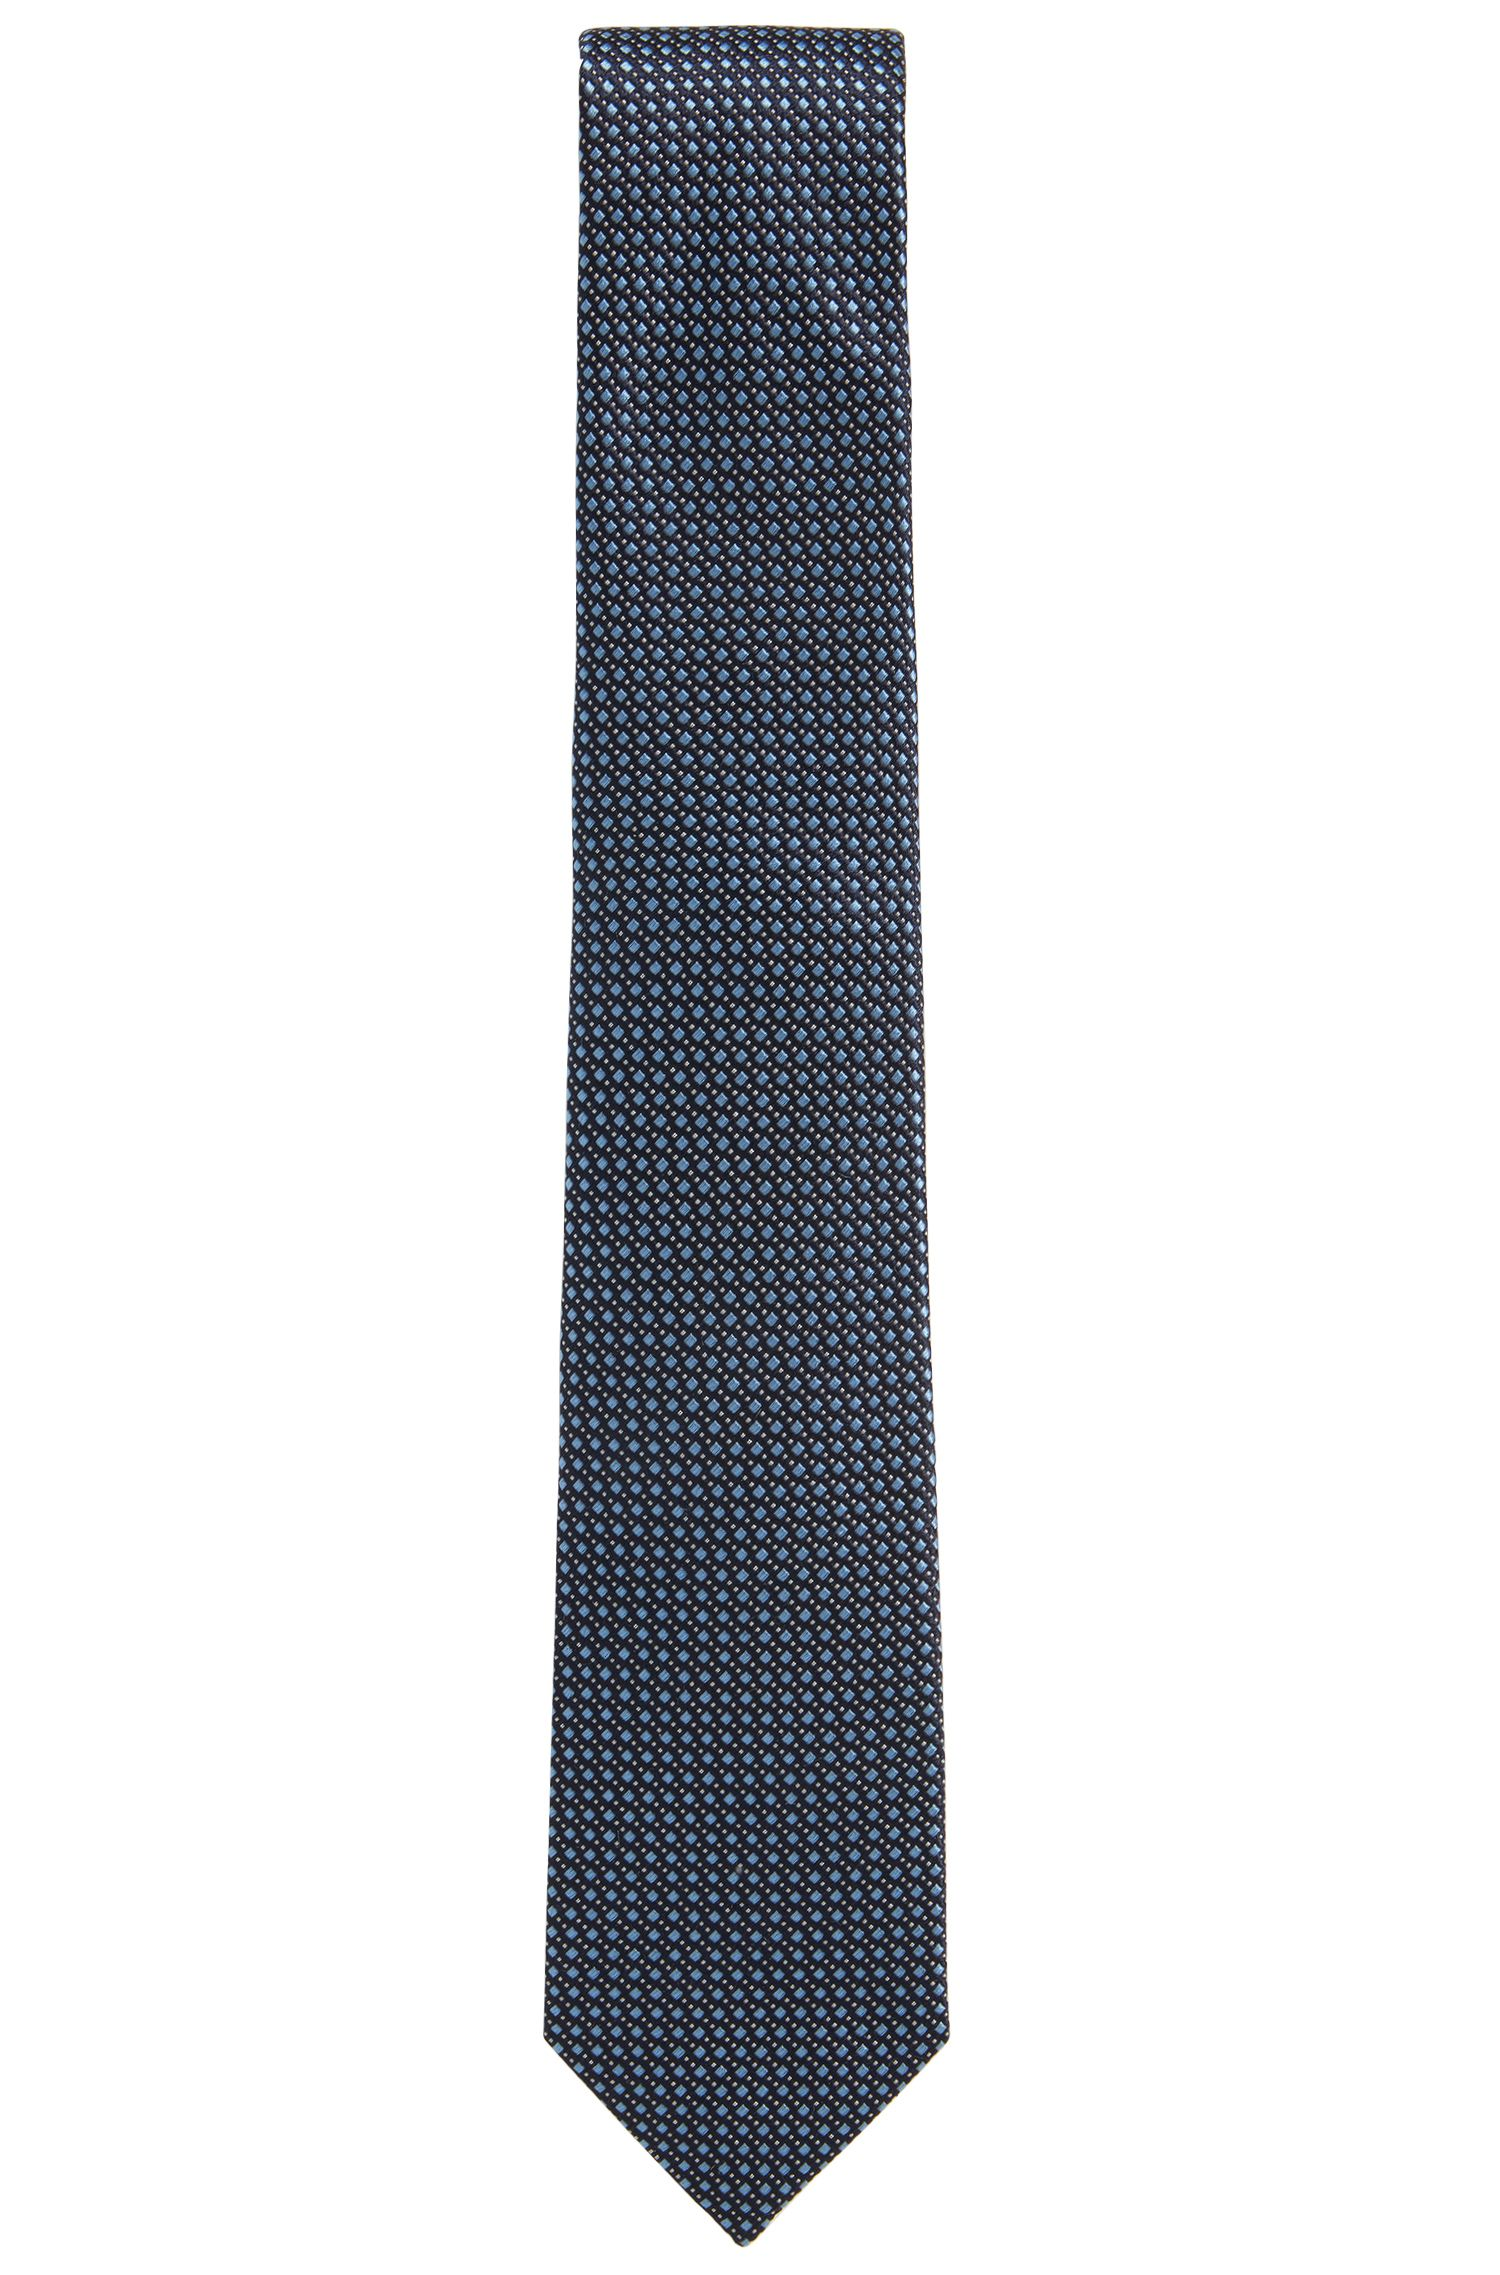 Made in Italy jacquard tie in patterned silk